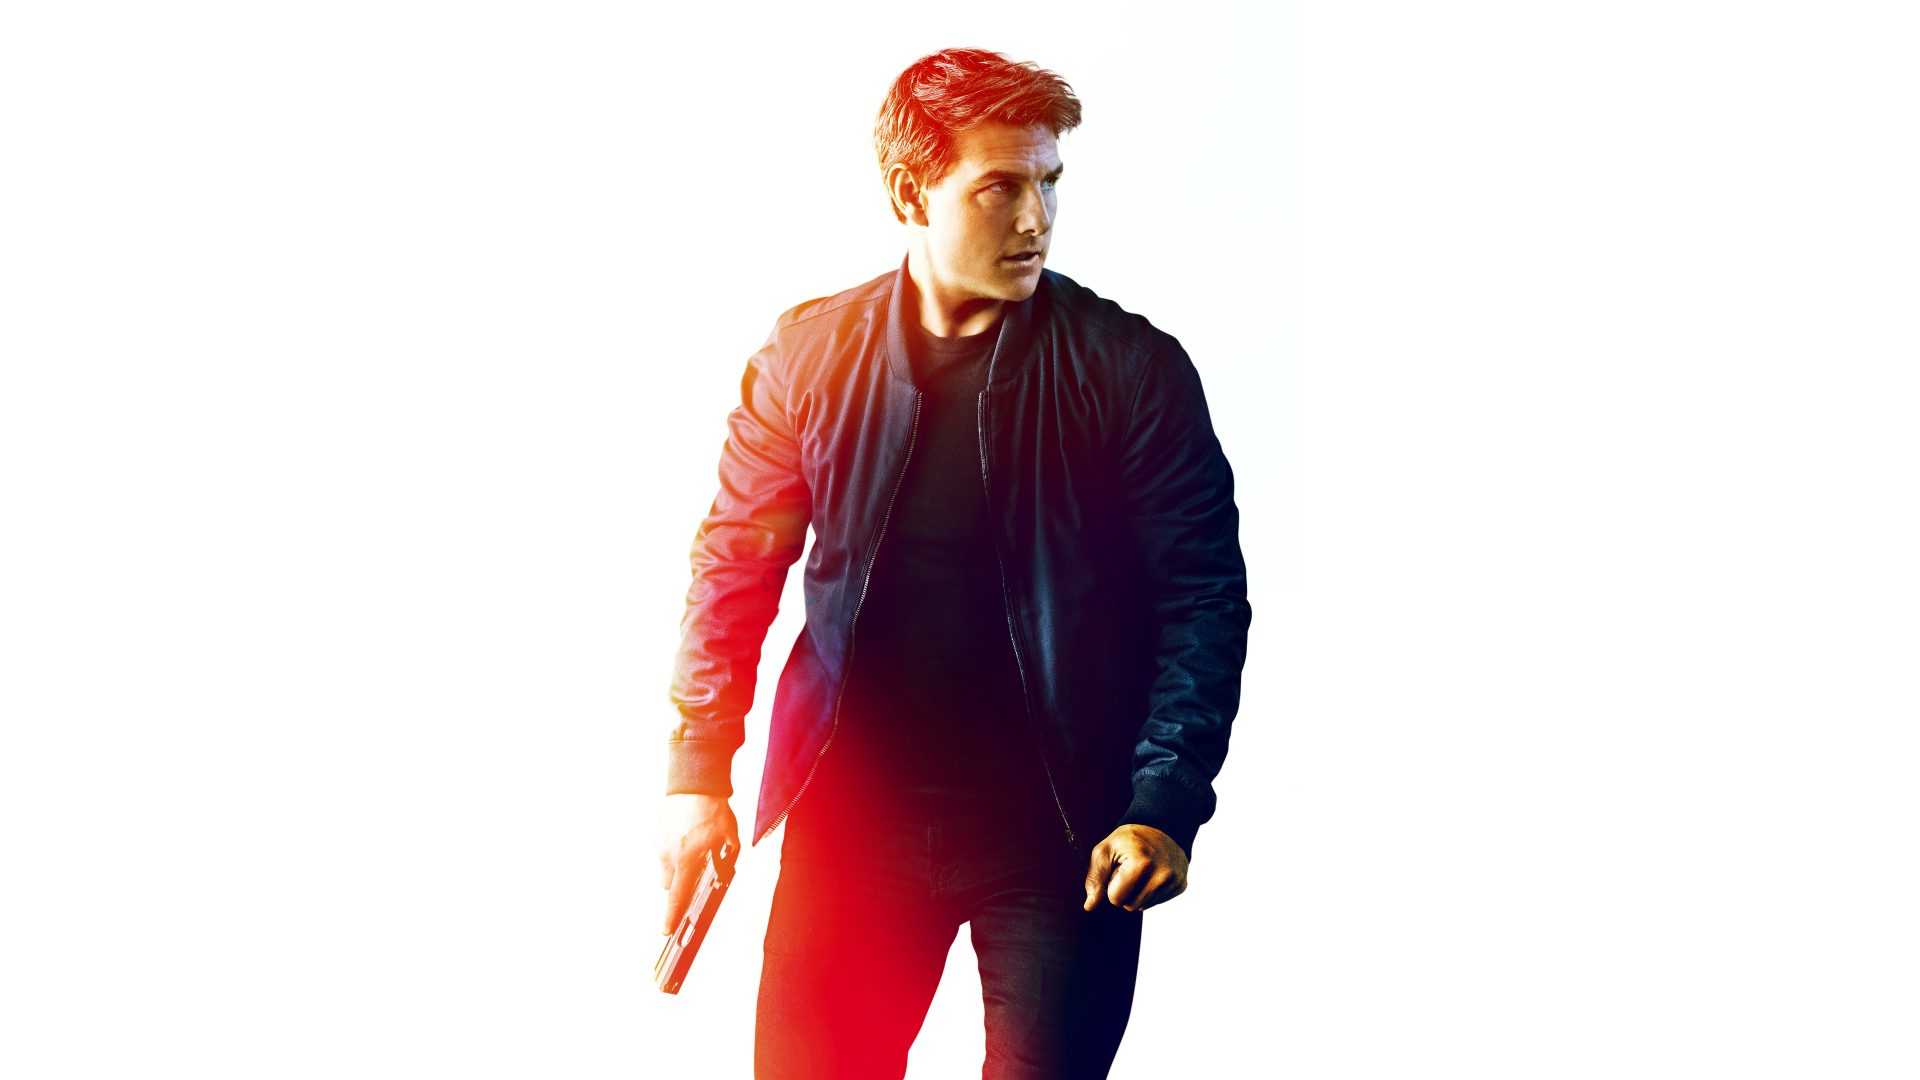 Tom Cruise Mission Impossible Fallout Poster 8k Wallpaper Best